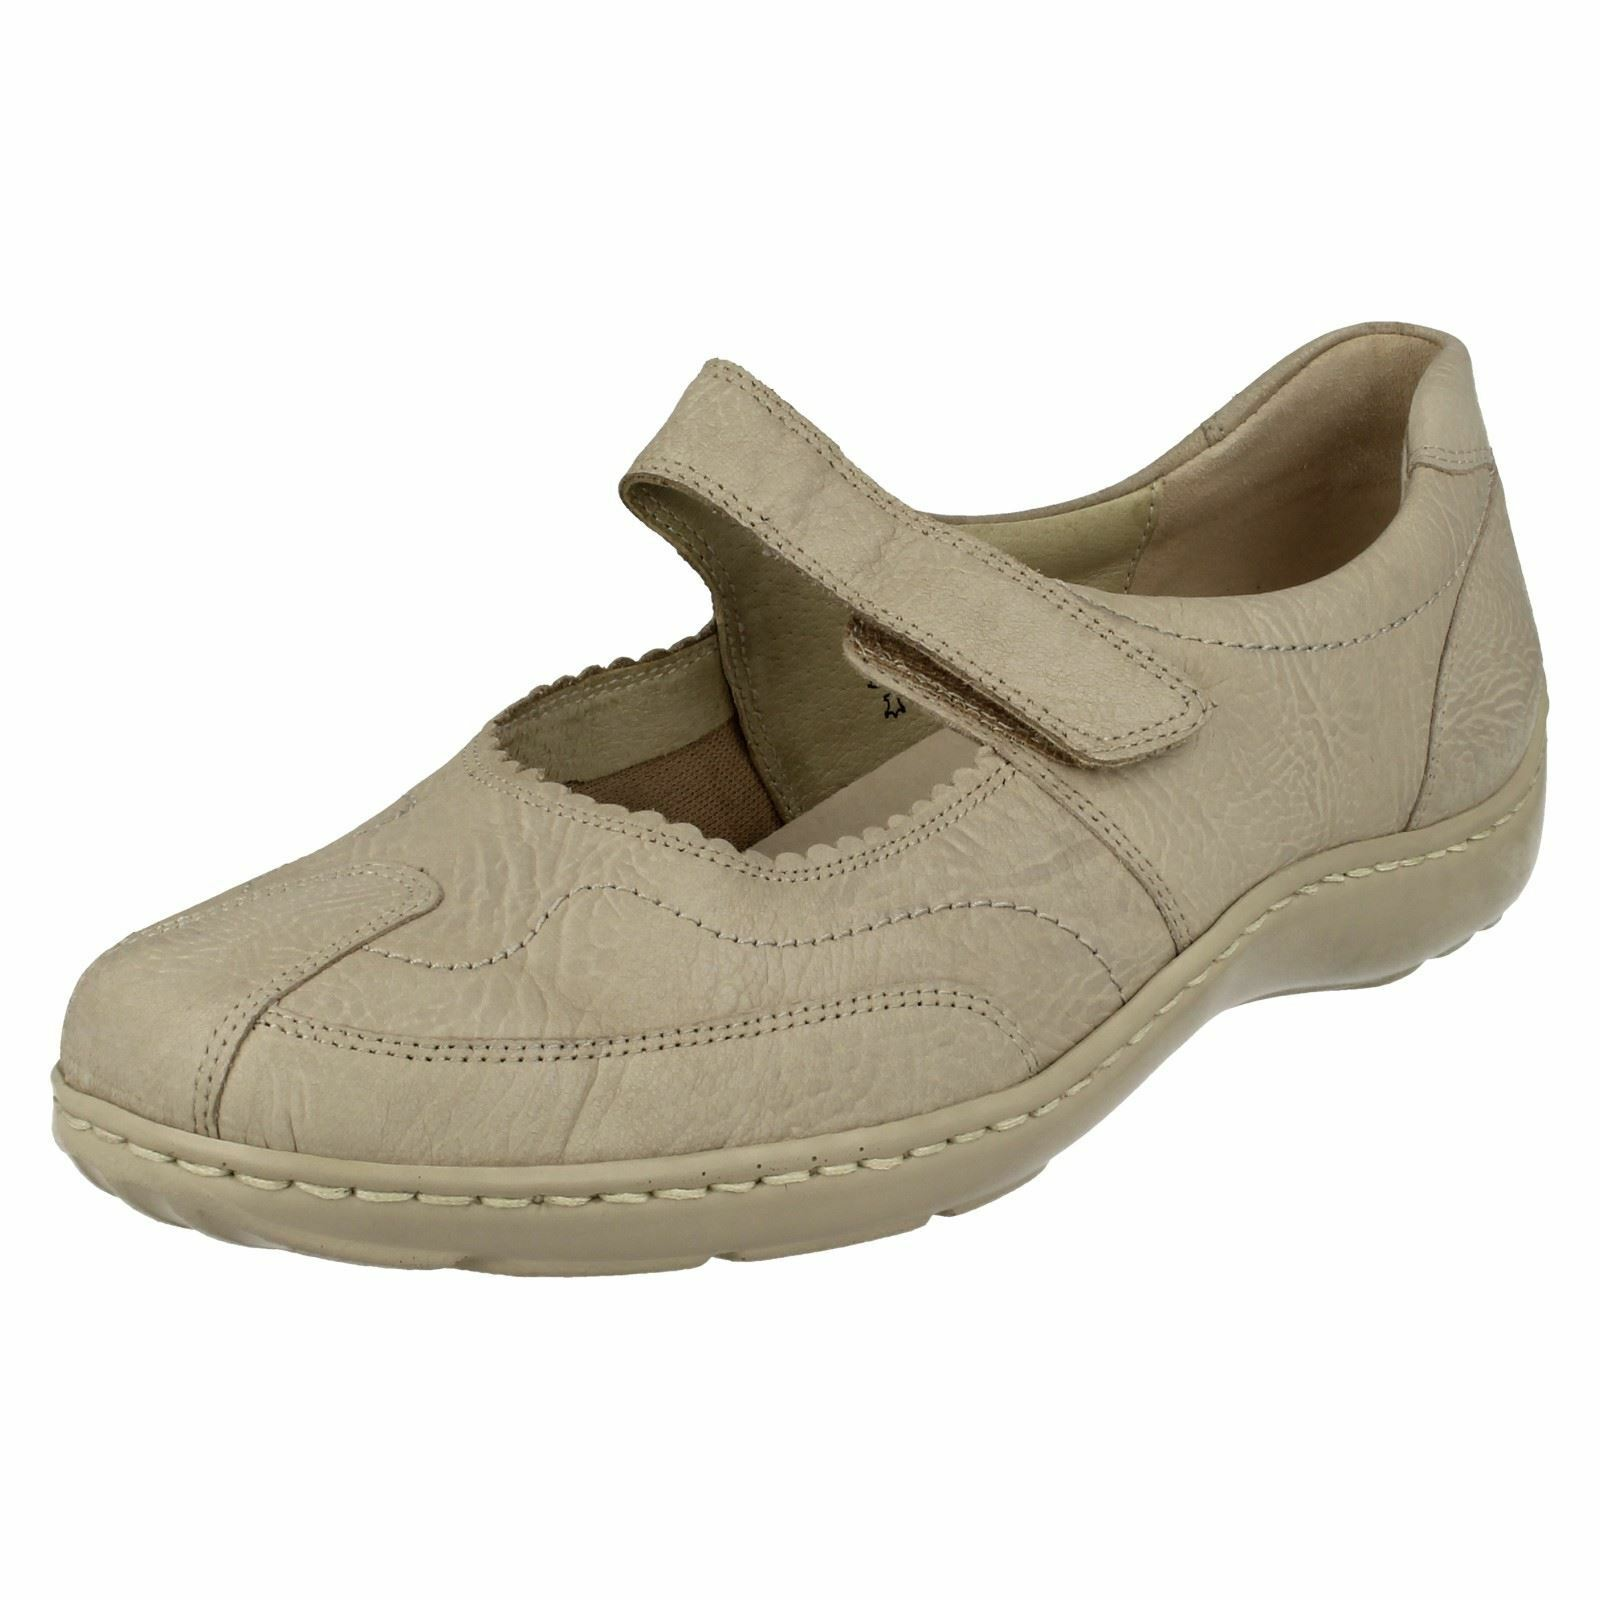 Mesdames waldlaufer casual mary jane style flat chaussures 496302